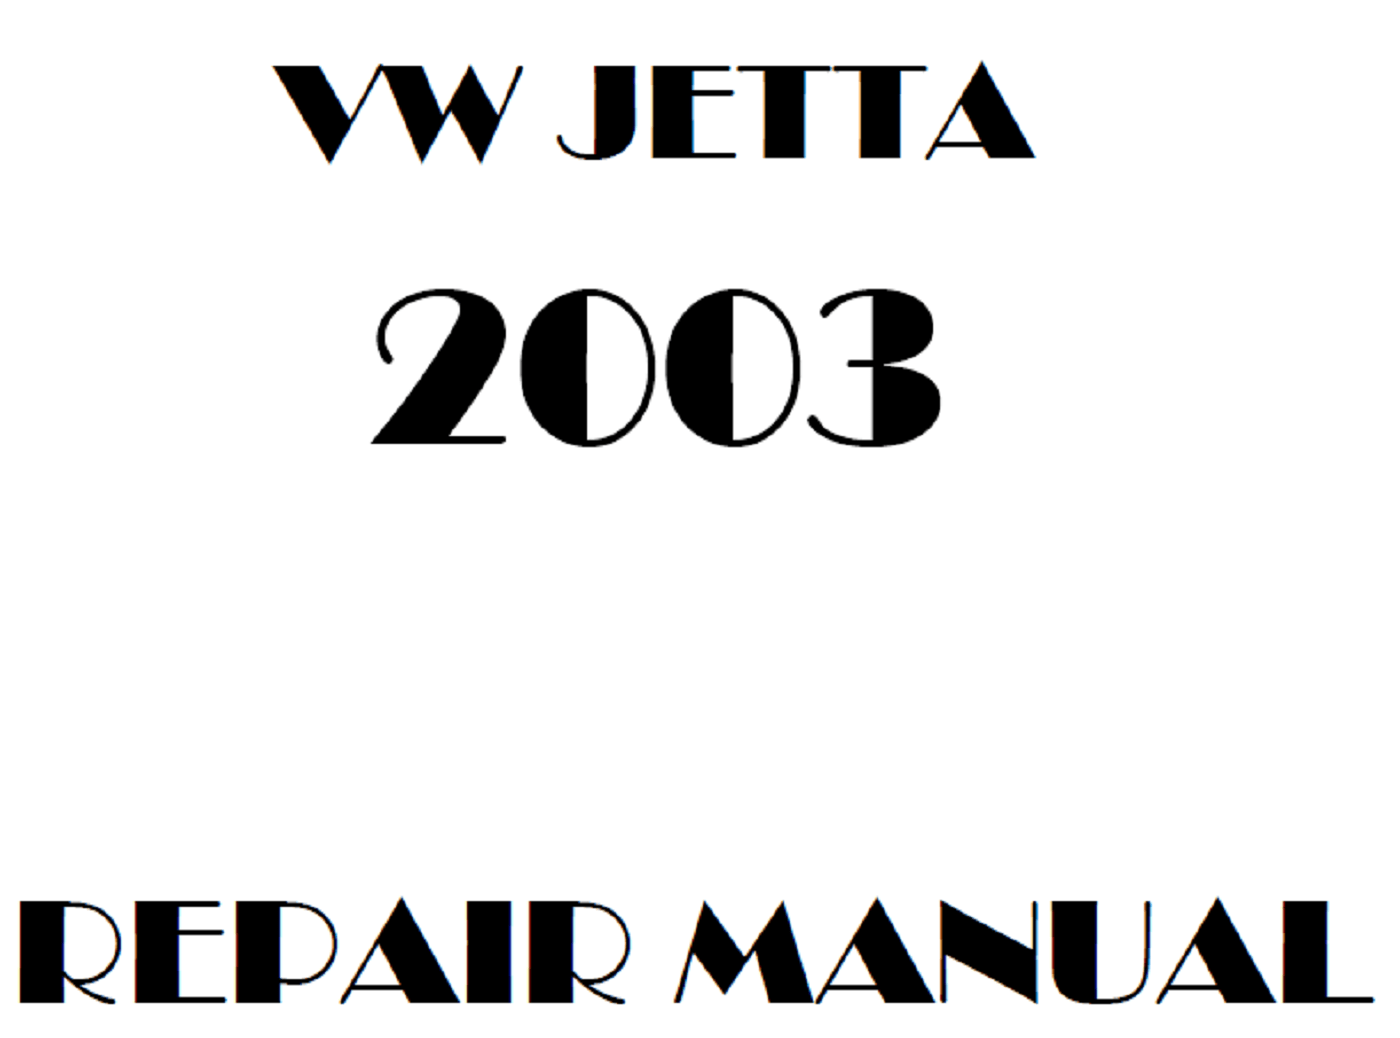 2003 Volkswagen Jetta repair manual